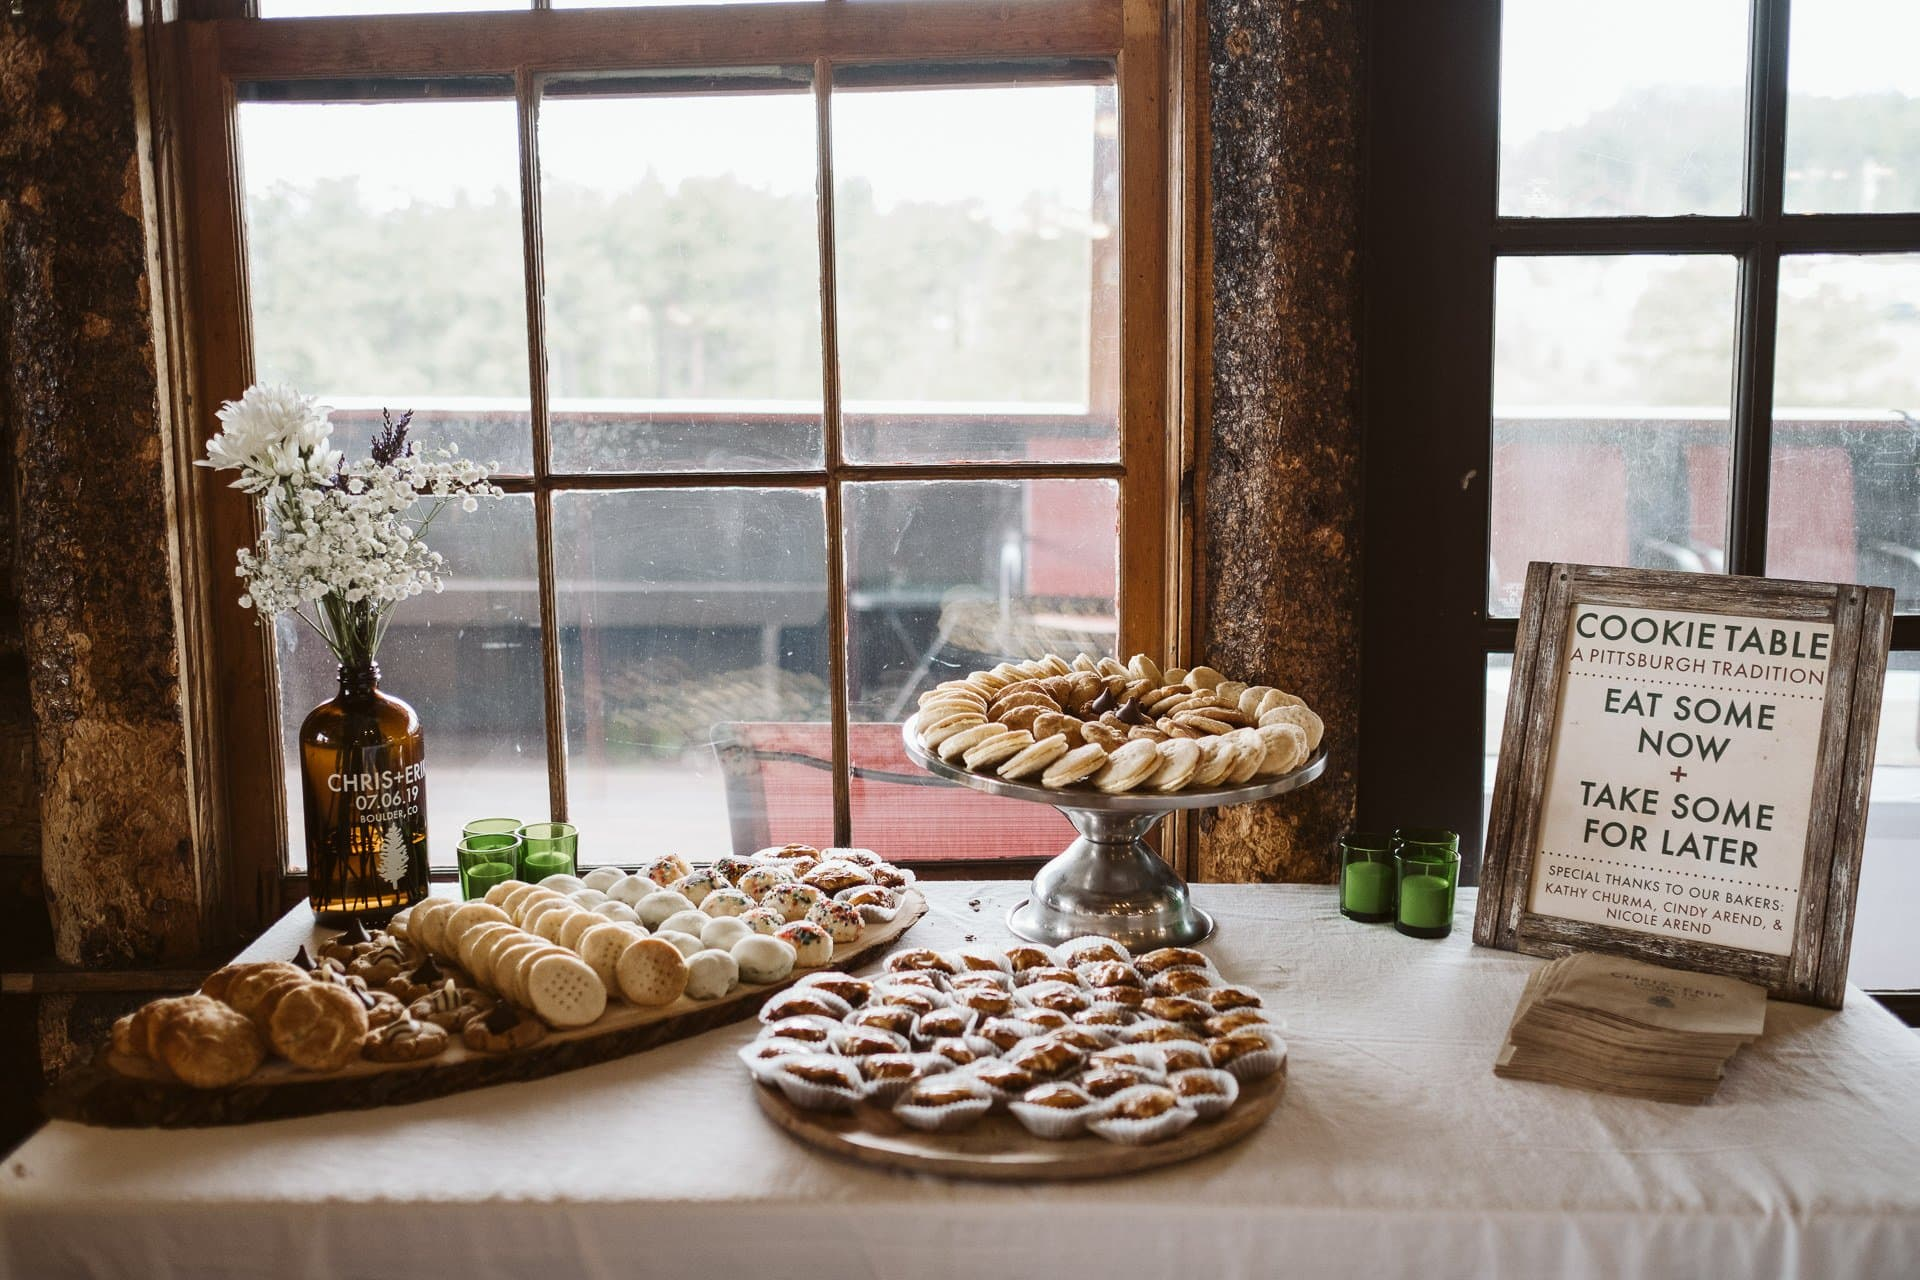 Wedding cake and cookie table